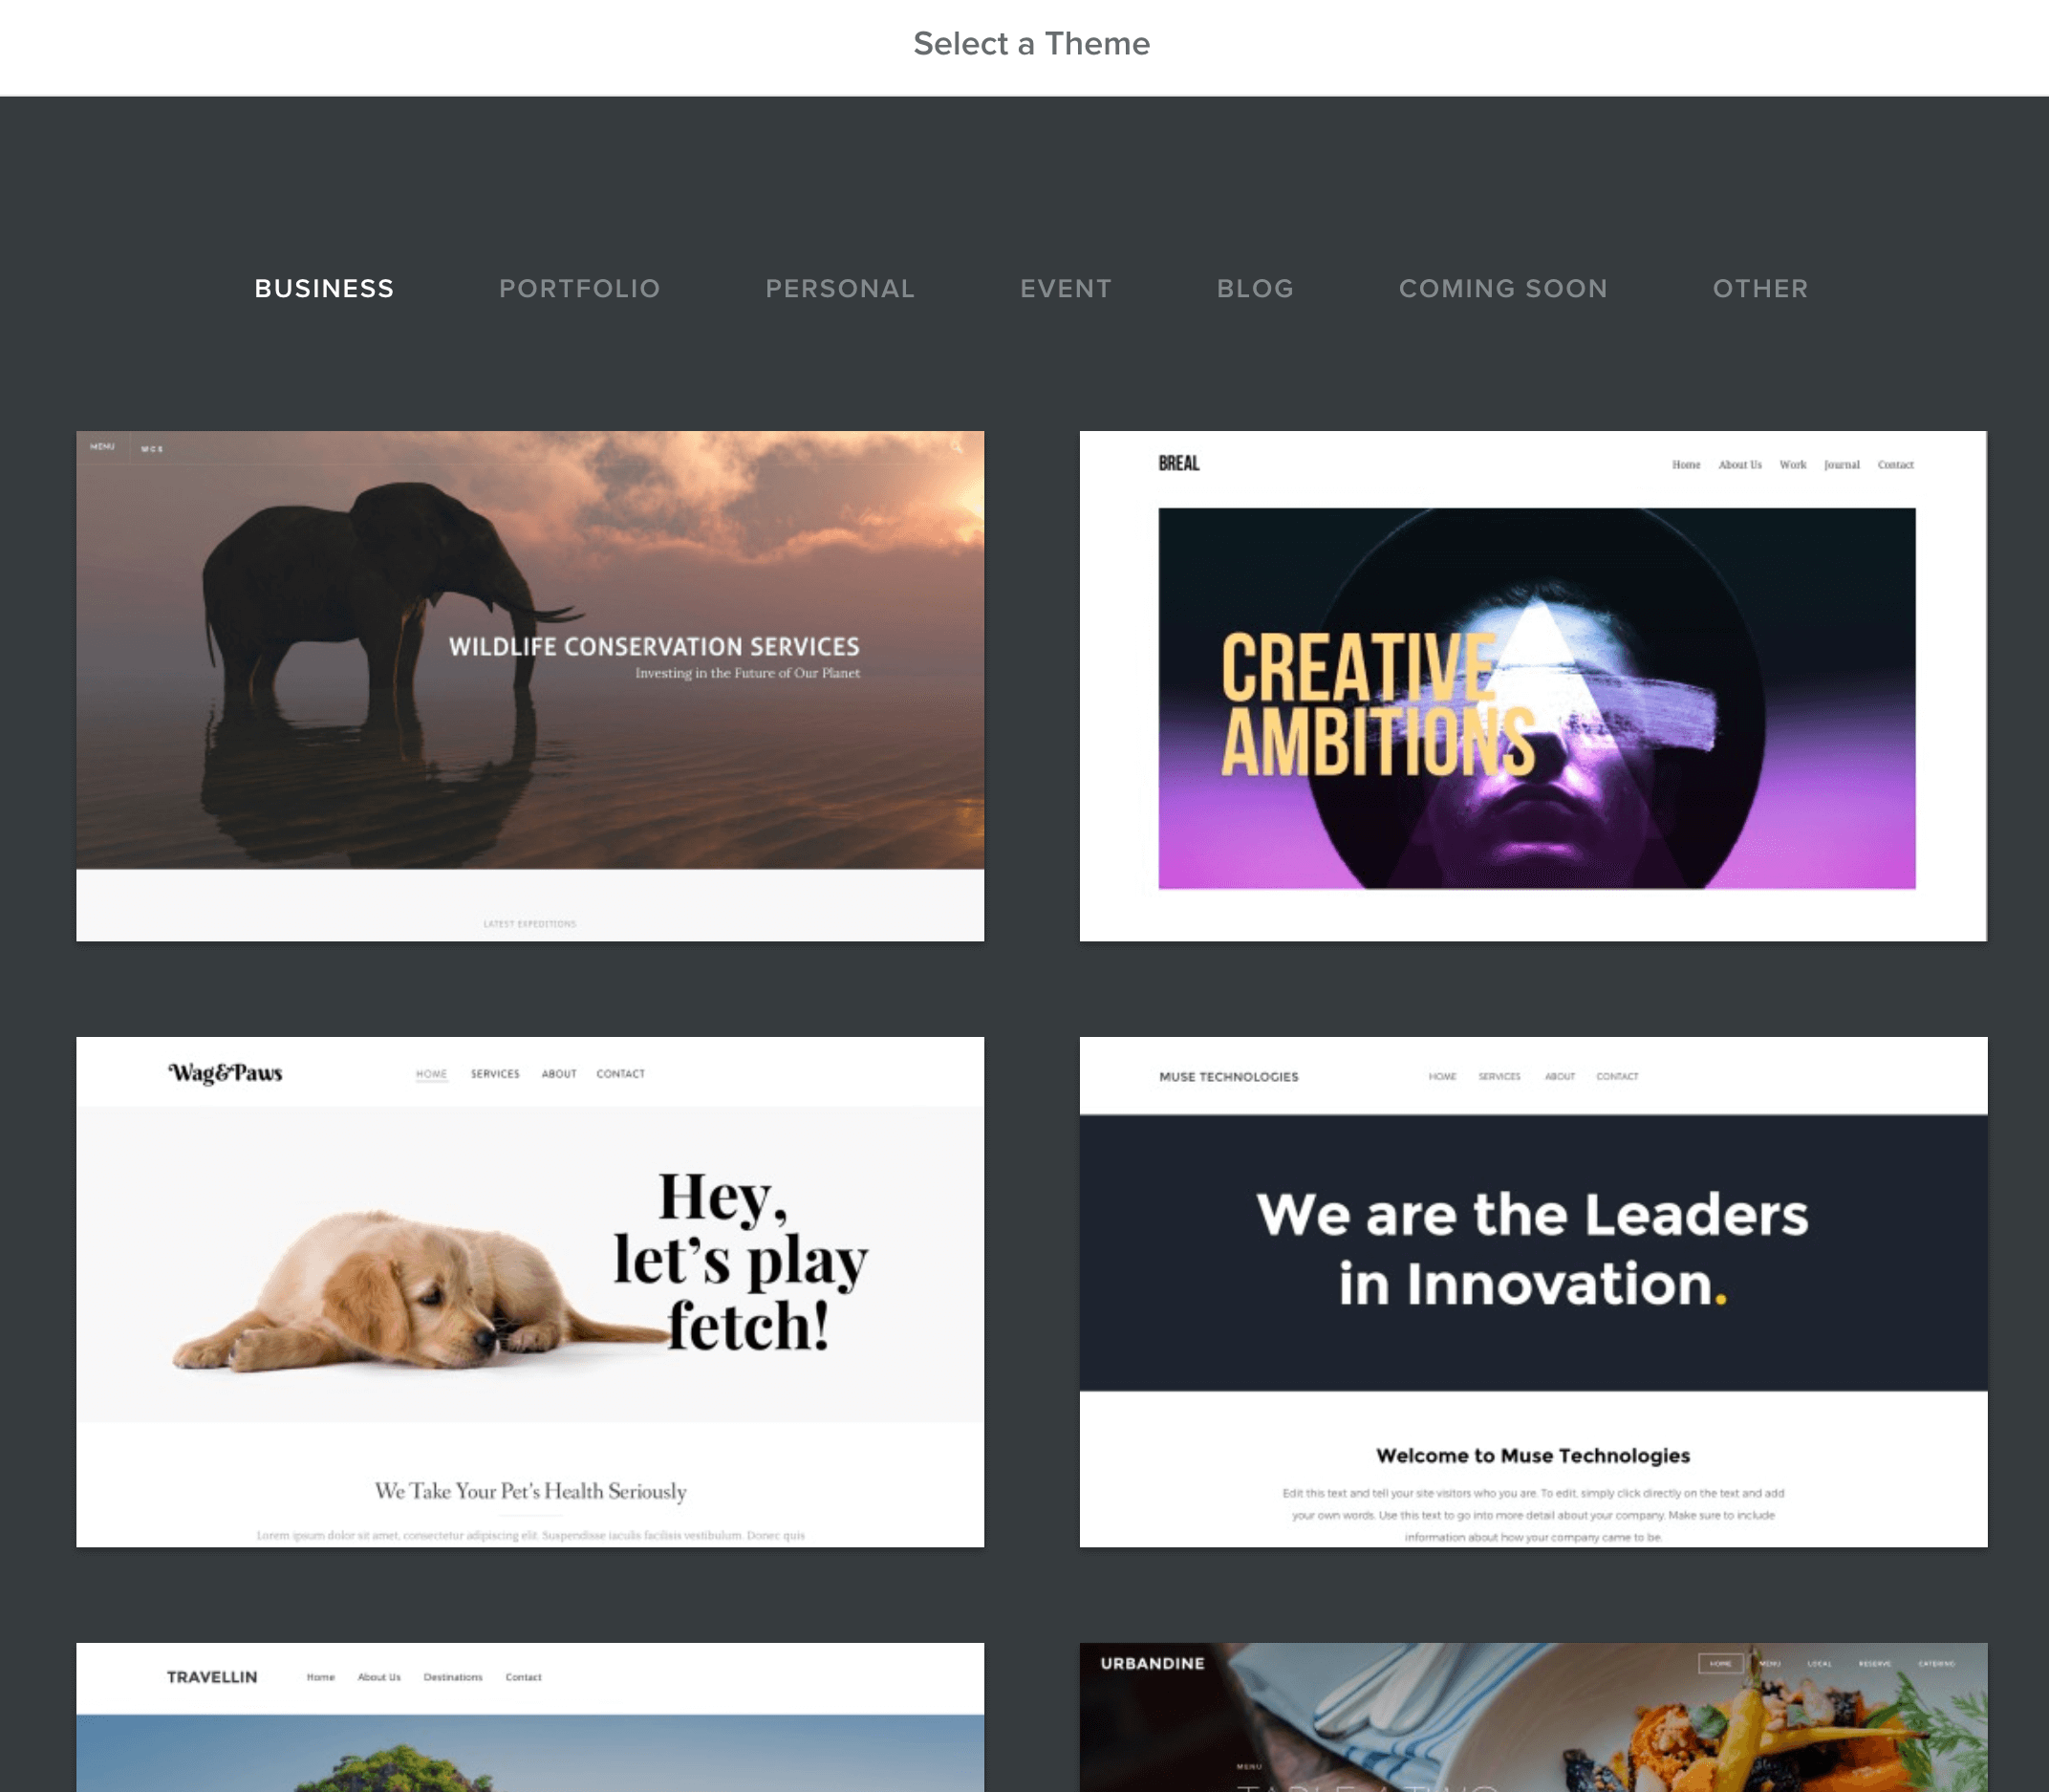 Weebly onboarding Themeauswahl